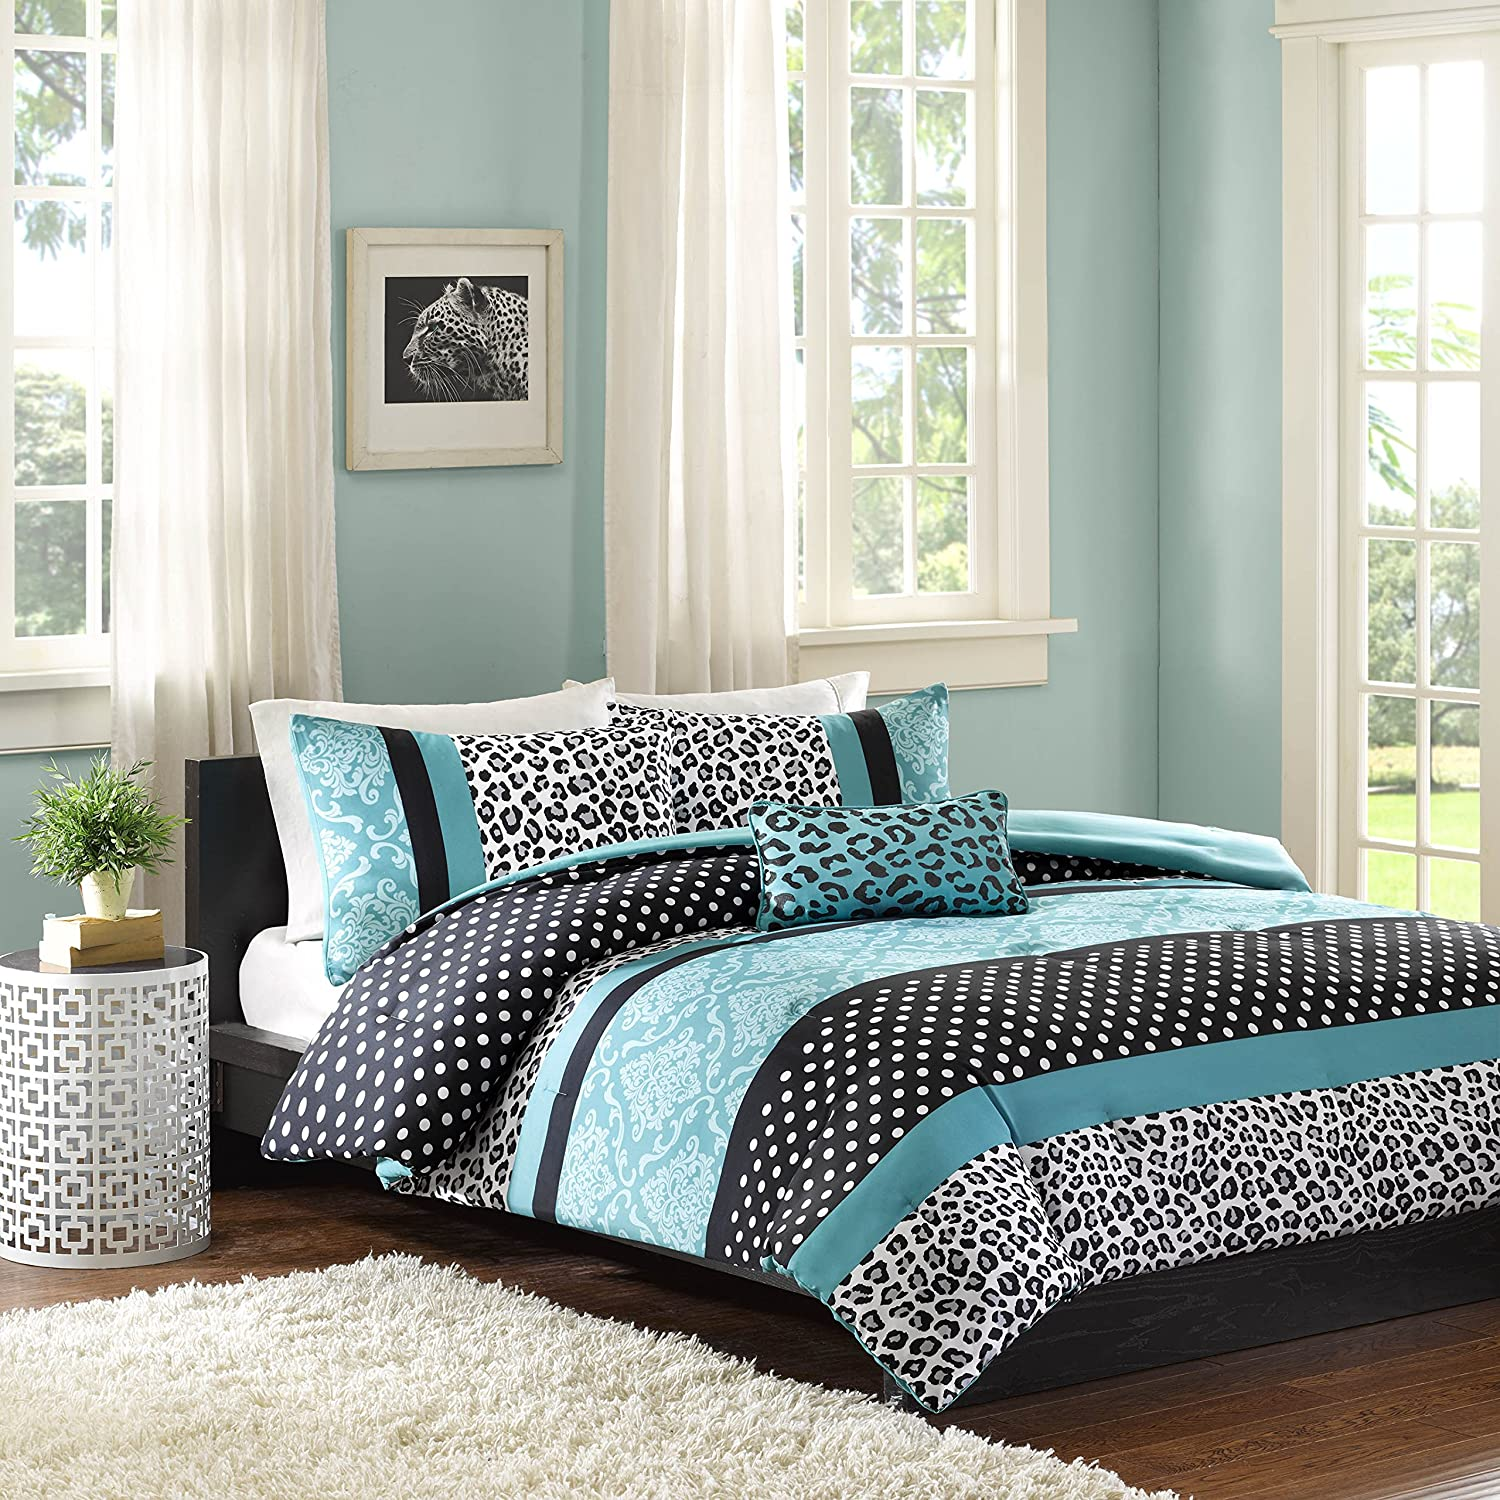 by fire blue panel tiffany bedding sure bedroom signature xplrvr bed furniture rug set design ashley willowton whitewash